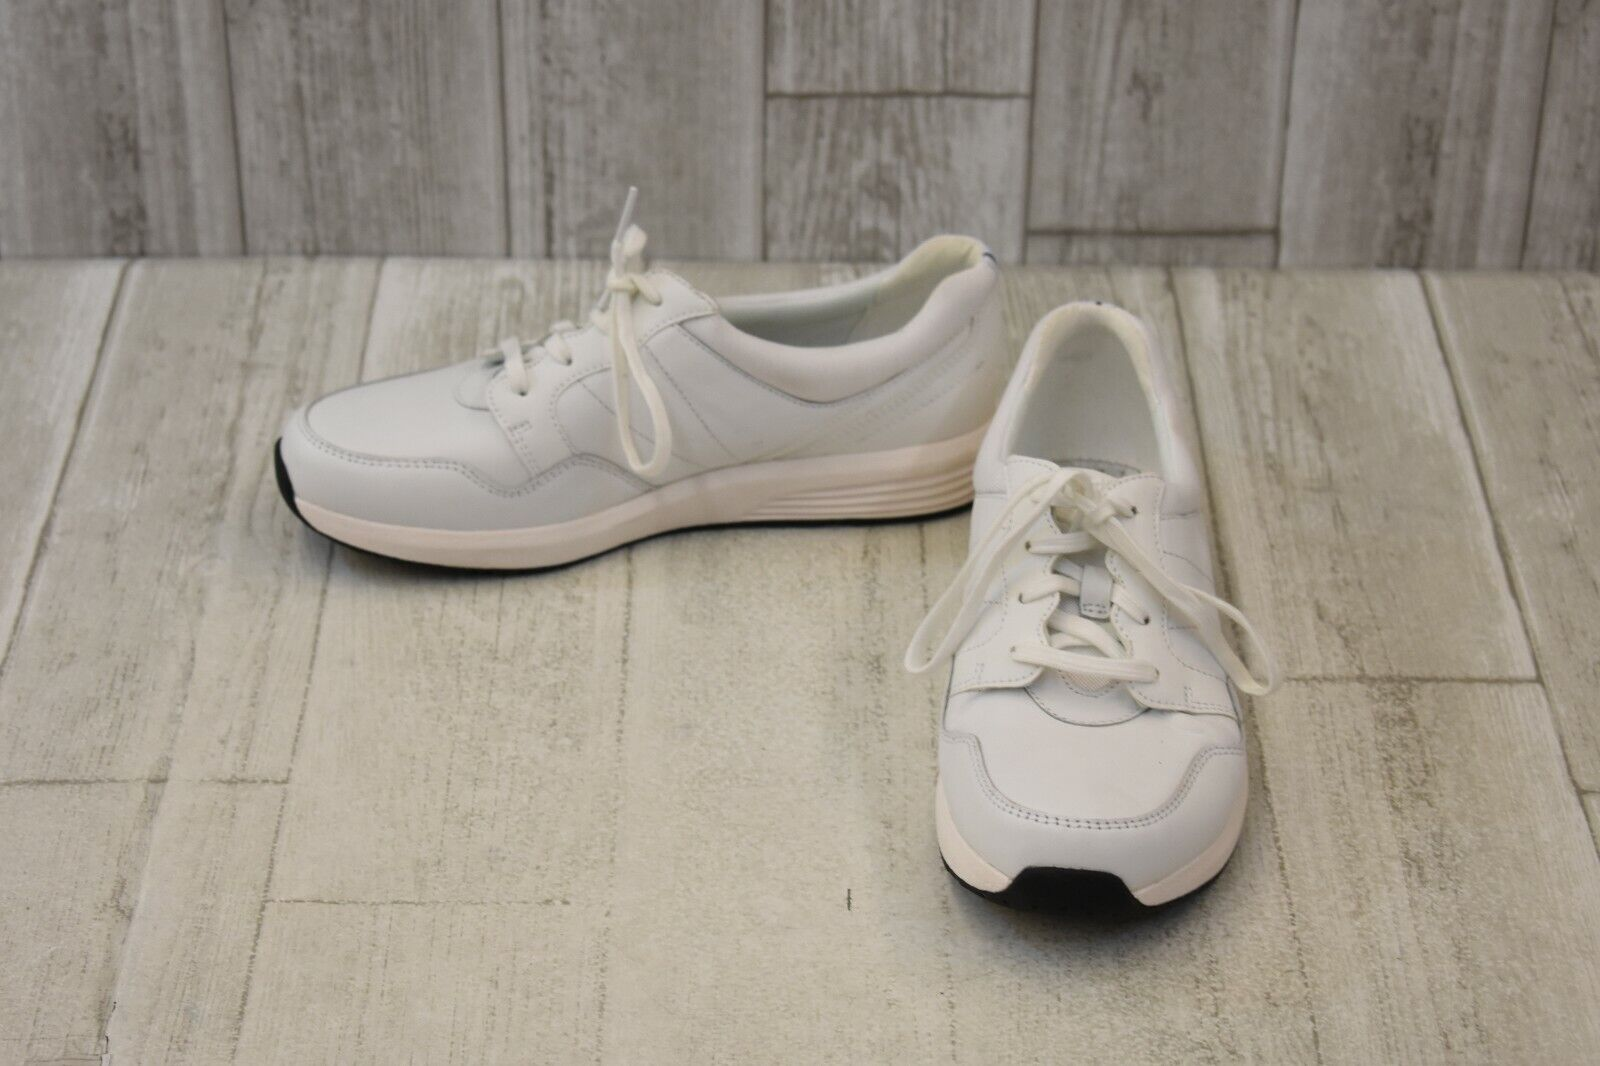 Rockport Trustride Lace Up Sneakers - Women's Size 8M - White